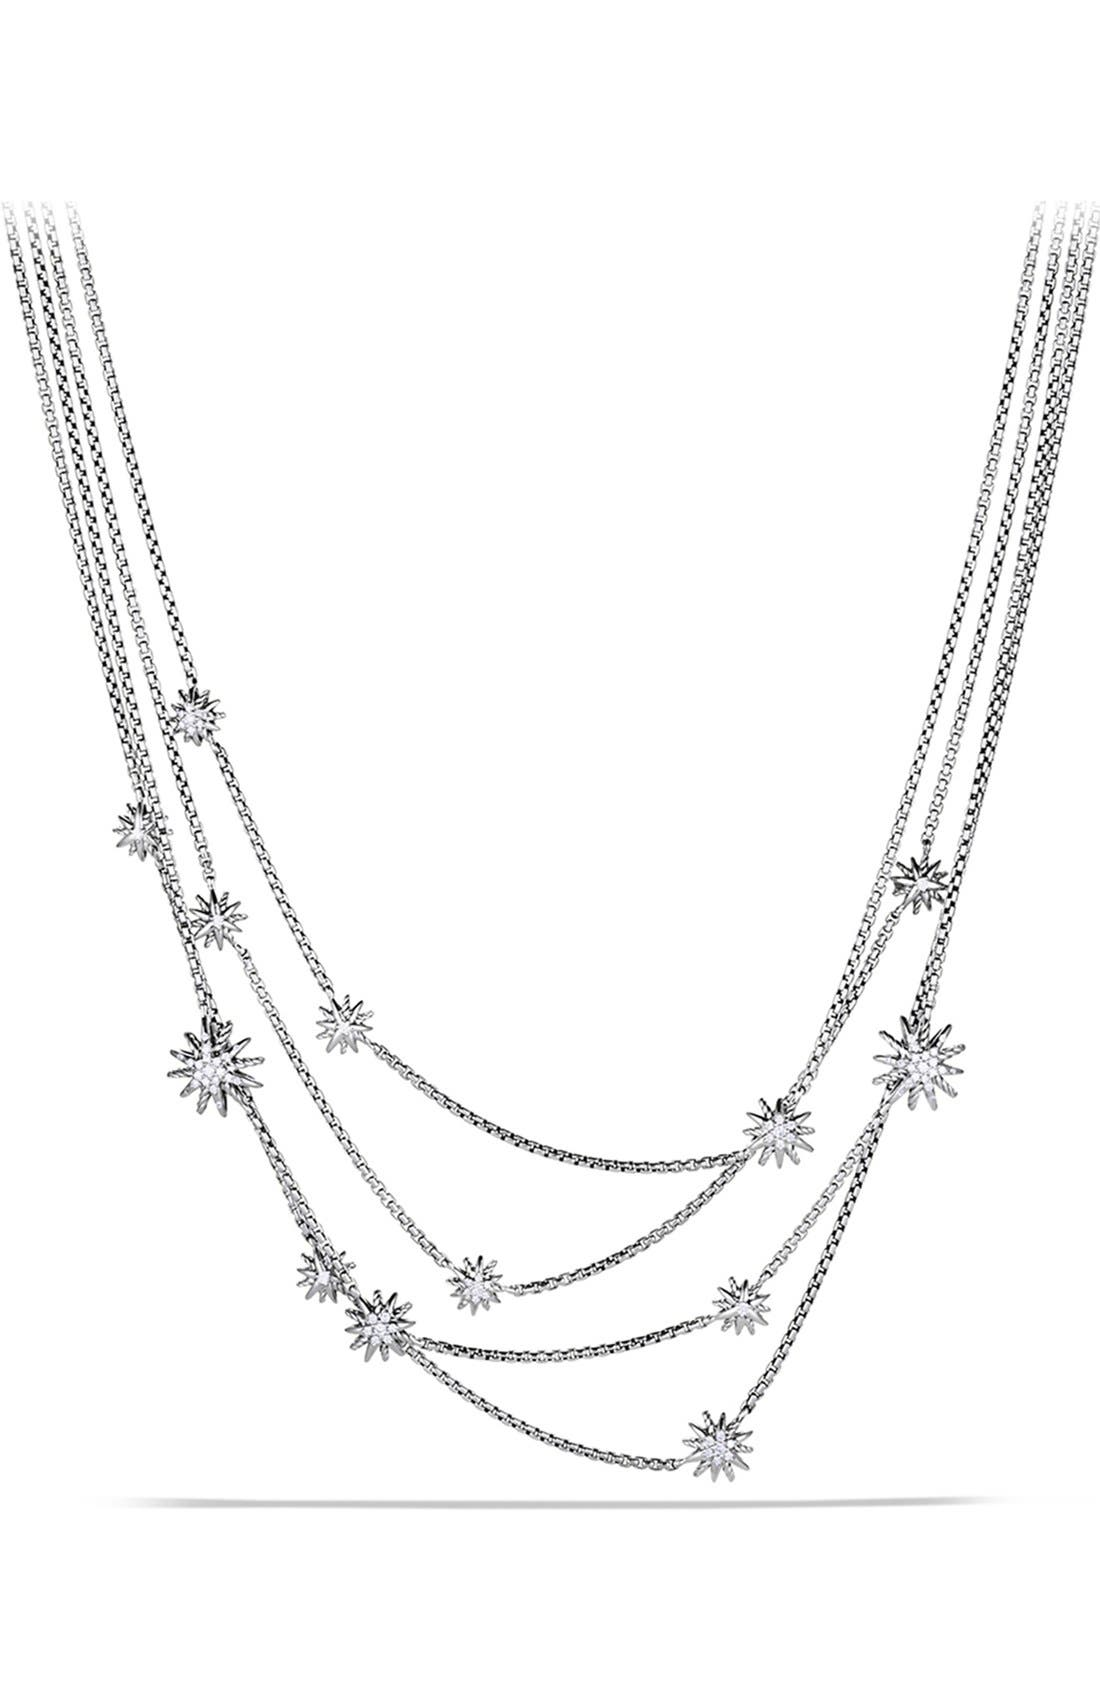 Main Image - David Yurman 'Starburst' Chain Necklace with Diamonds